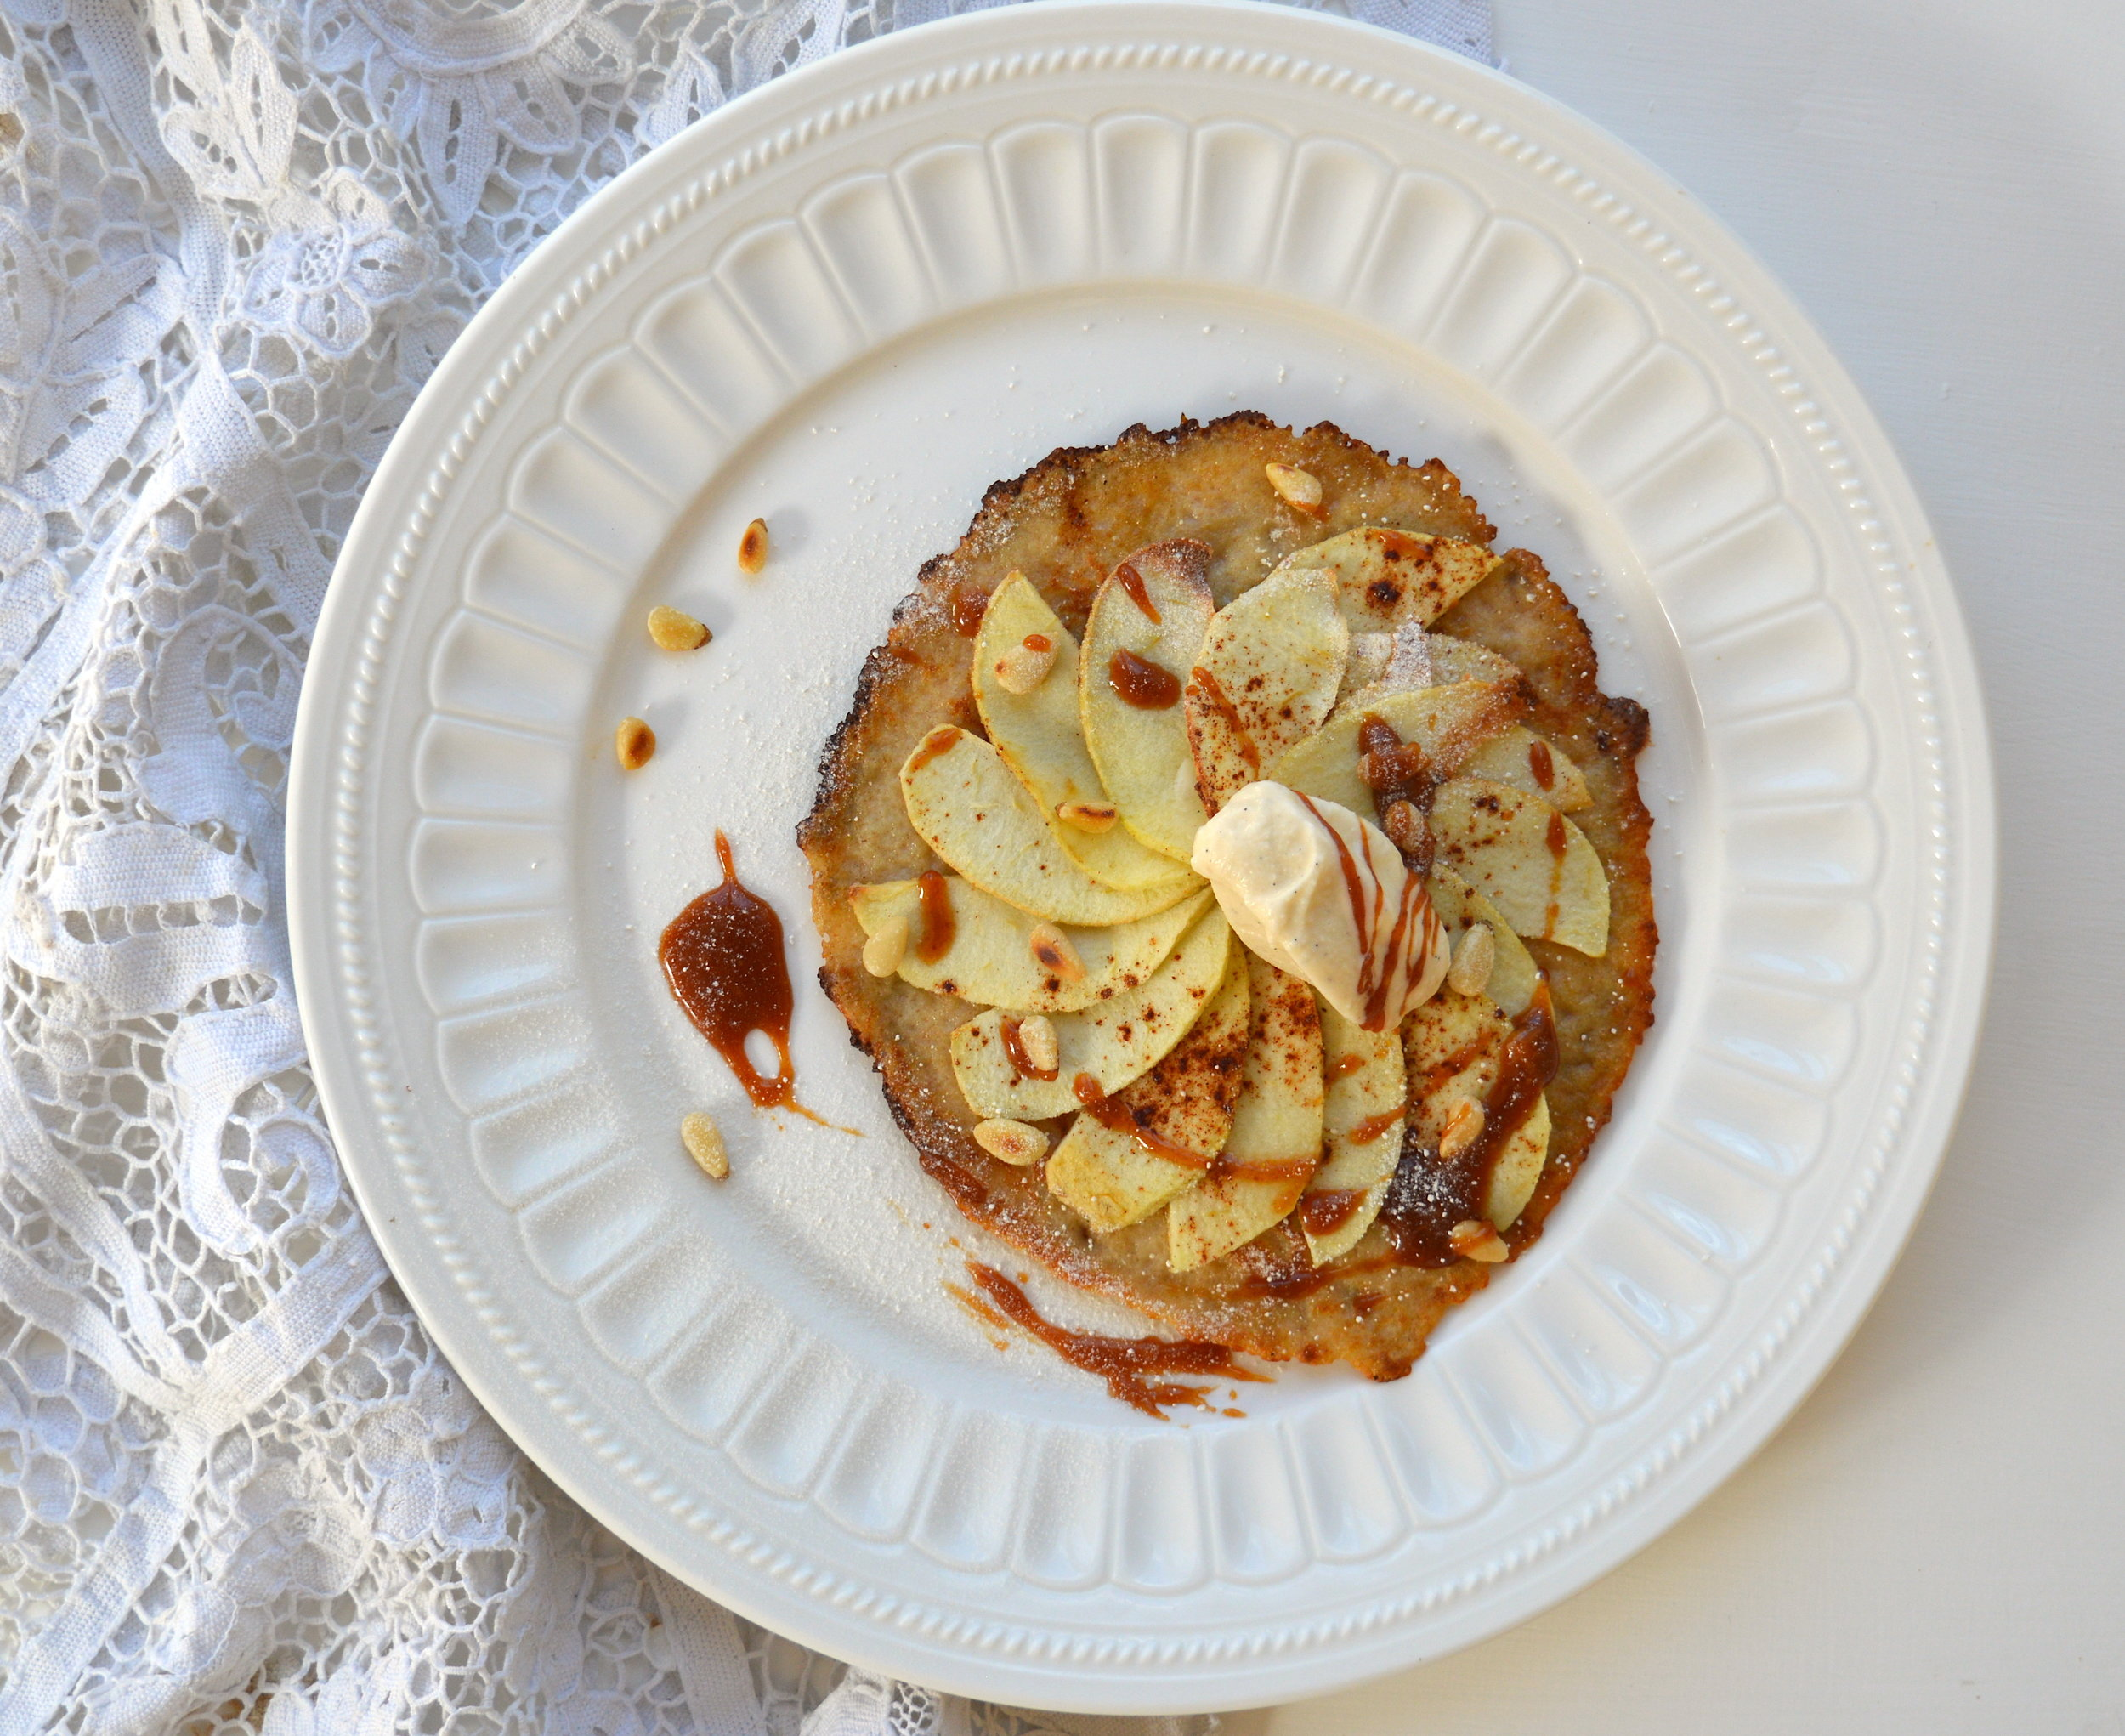 This is inspired by a wonderful apple tart that I had at L'Auberge De La Mole back in the summer in St Tropez. I have since dreamt of this delicate, beautiful tart that had a super-fine pancake-like base. It was so simple but really hit the nail on the spot! Here I have tried to recreate it from memory and I have added in a salted caramel sauce with a few crunchy pine nuts for good measure. This is a great dinner party dessert as it can be made ahead of time and thrown together just before serving.  Makes 4 tarts Ingredients: For the spelt crepe: 200g spelt flour 3 tbsp almond flour 500ml whole milk 1 tbsp unrefined caster sugar 1 tsp vanilla extract 2 medium free-range eggs 30g butter and extra sugar for frying  For the apples: 6 medium cooking apples, peeled 70-80g unrefined caster sugar 1-2 tsp cinnamon powder Zest of a lemon  For the salted caramel sauce: 150g unrefined caster sugar 150ml double cream pinch of sea salt  20g toasted pine nuts for garnishing Unrefined icing sugar for dusting Vanilla ice cream  Preheat the oven to 180 degrees on the fan setting.  Start by making the crepe batter. In a large bowl add the spelt, almond flour, sugar, vanilla extract and mix together. Make a well in the middle of the flour and add the eggs mixing together with a wooden spoon. Then slowly pour in a little milk into the centre and mix. Continue adding the milk and mixing careful to avoid lumps. You will need to beat it quite hard at the beginning and keep adding until all the milk is incorporated. Heat a large non-stick frying pan to a medium to high heat with a little butter and once hot spoon 1-2 tablespoons of the batter into the centre of the pan. Try to keep the pancake thin, small and round so avoid moving it around the pan too much. Just before you turn it over add a little more butter to the pan and a good pinch of sugar. Then use a spatula to flip it over trying to make sure some of the sugar gets underneath the pancake. This will caramelise and crisp up the bot